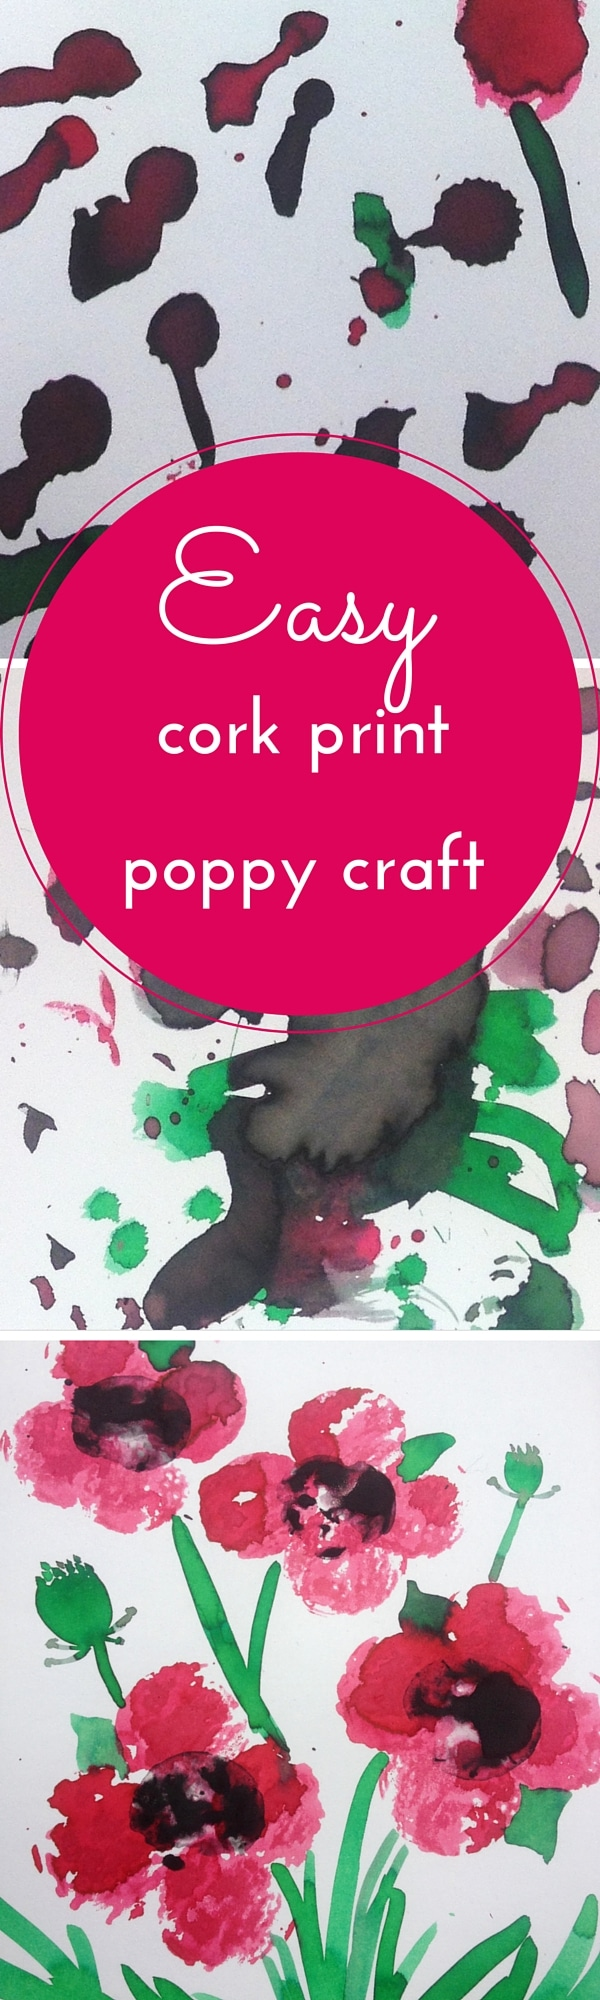 Easy poppy craft cork printing